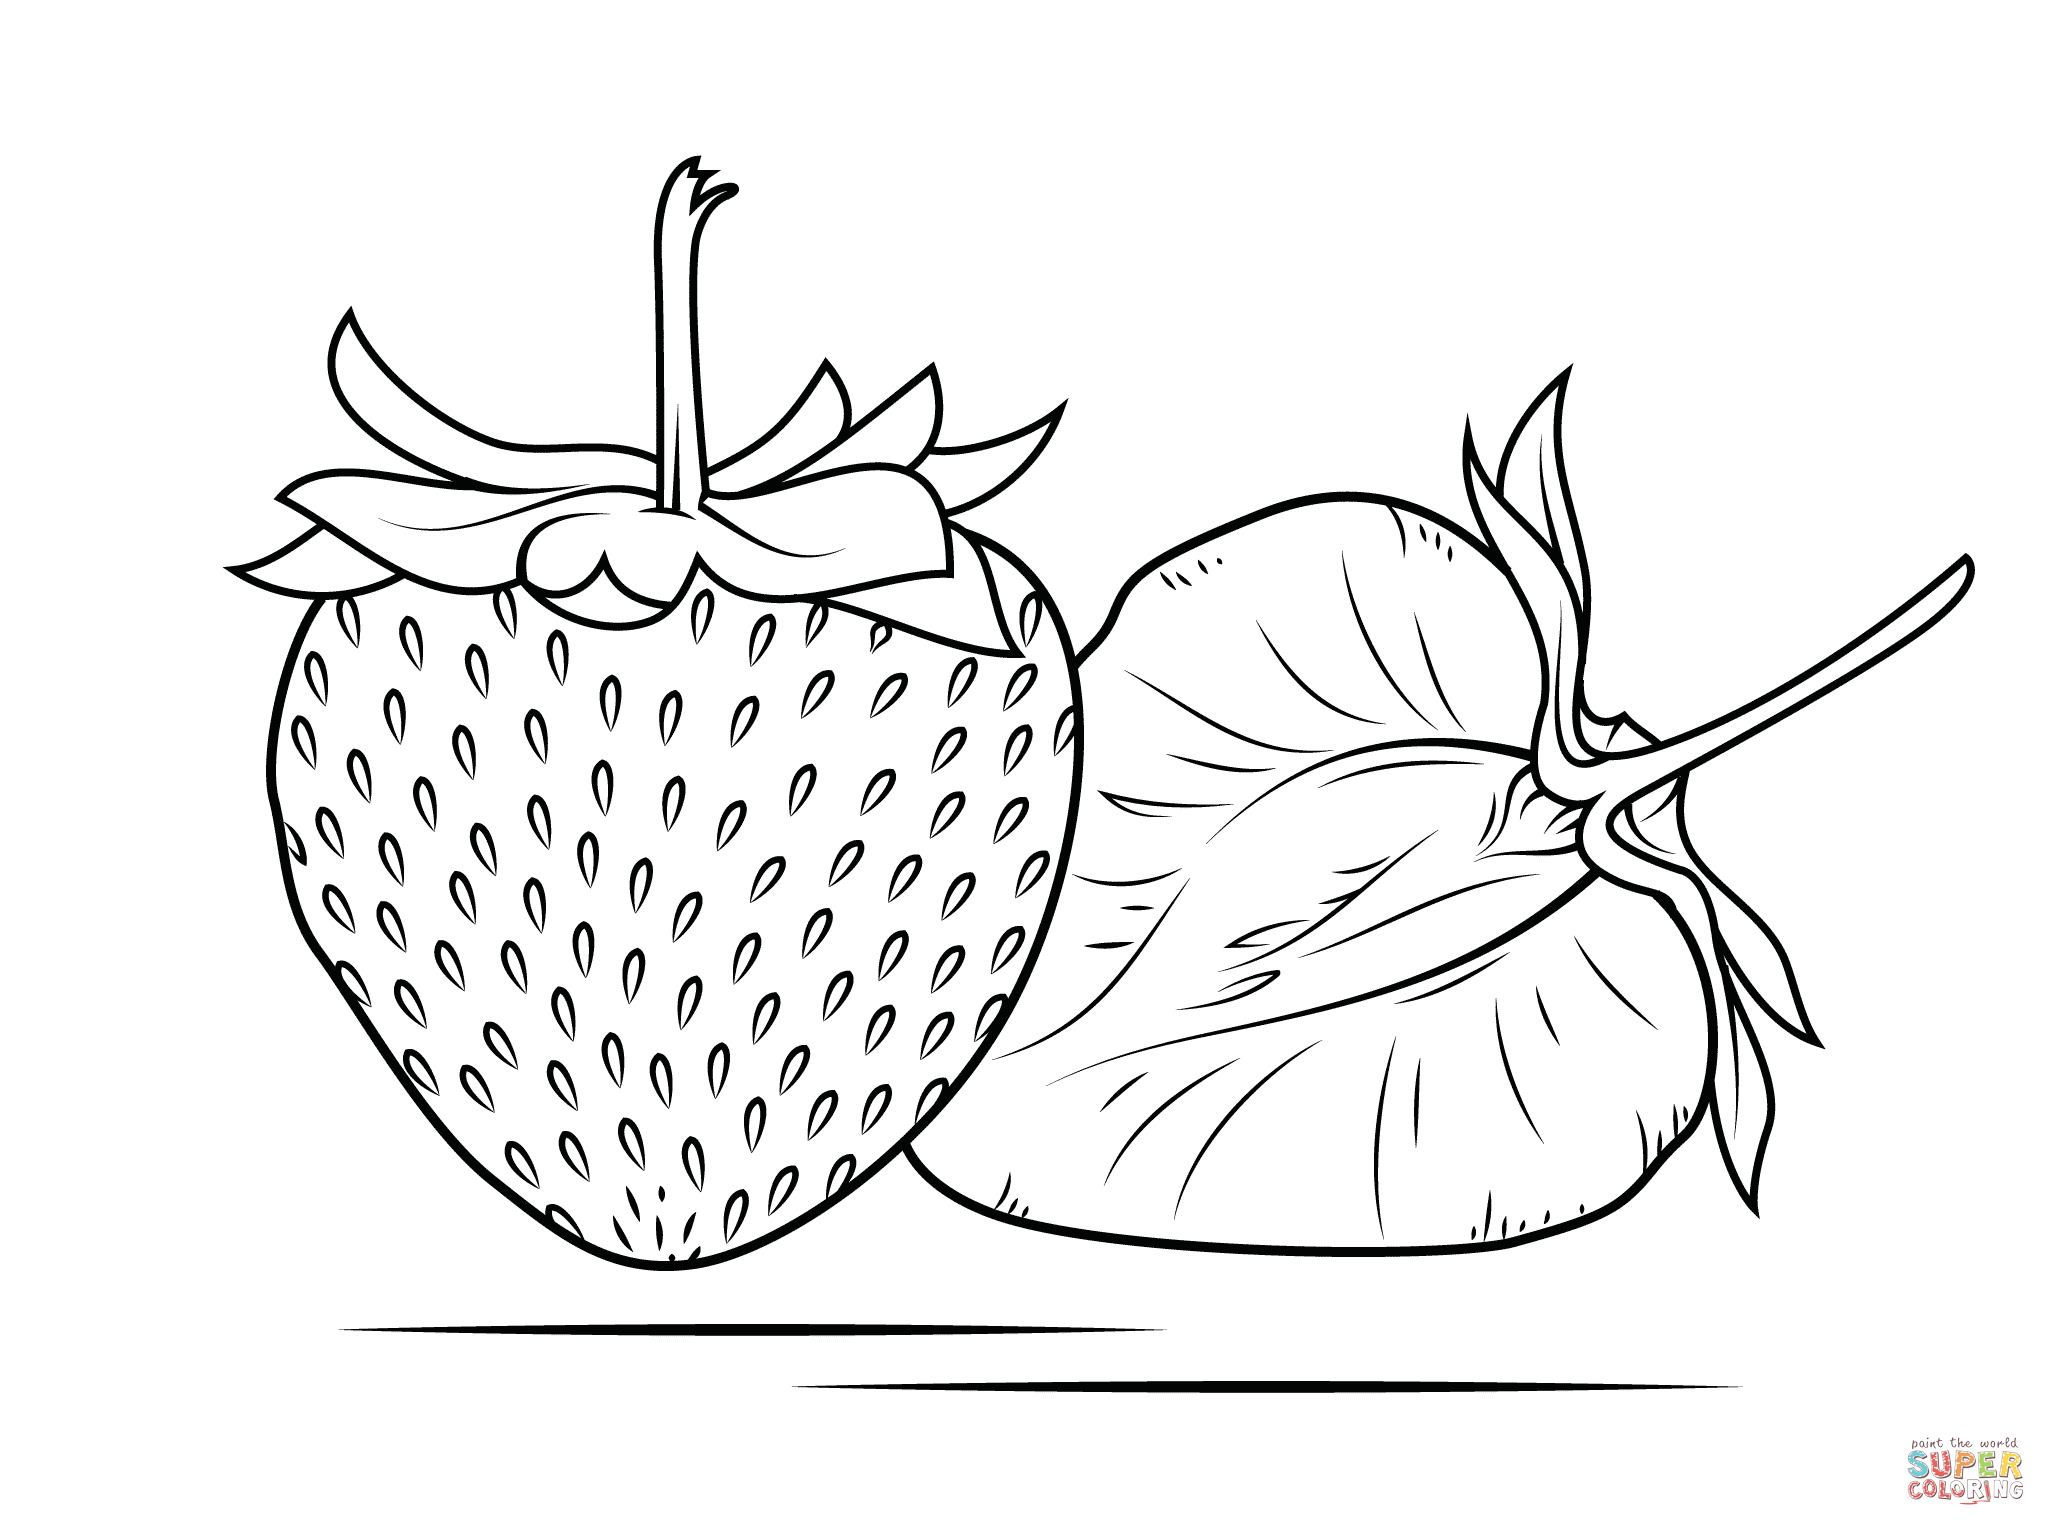 colouring pages of strawberry strawberry coloring pages coloring pages to download and pages colouring strawberry of